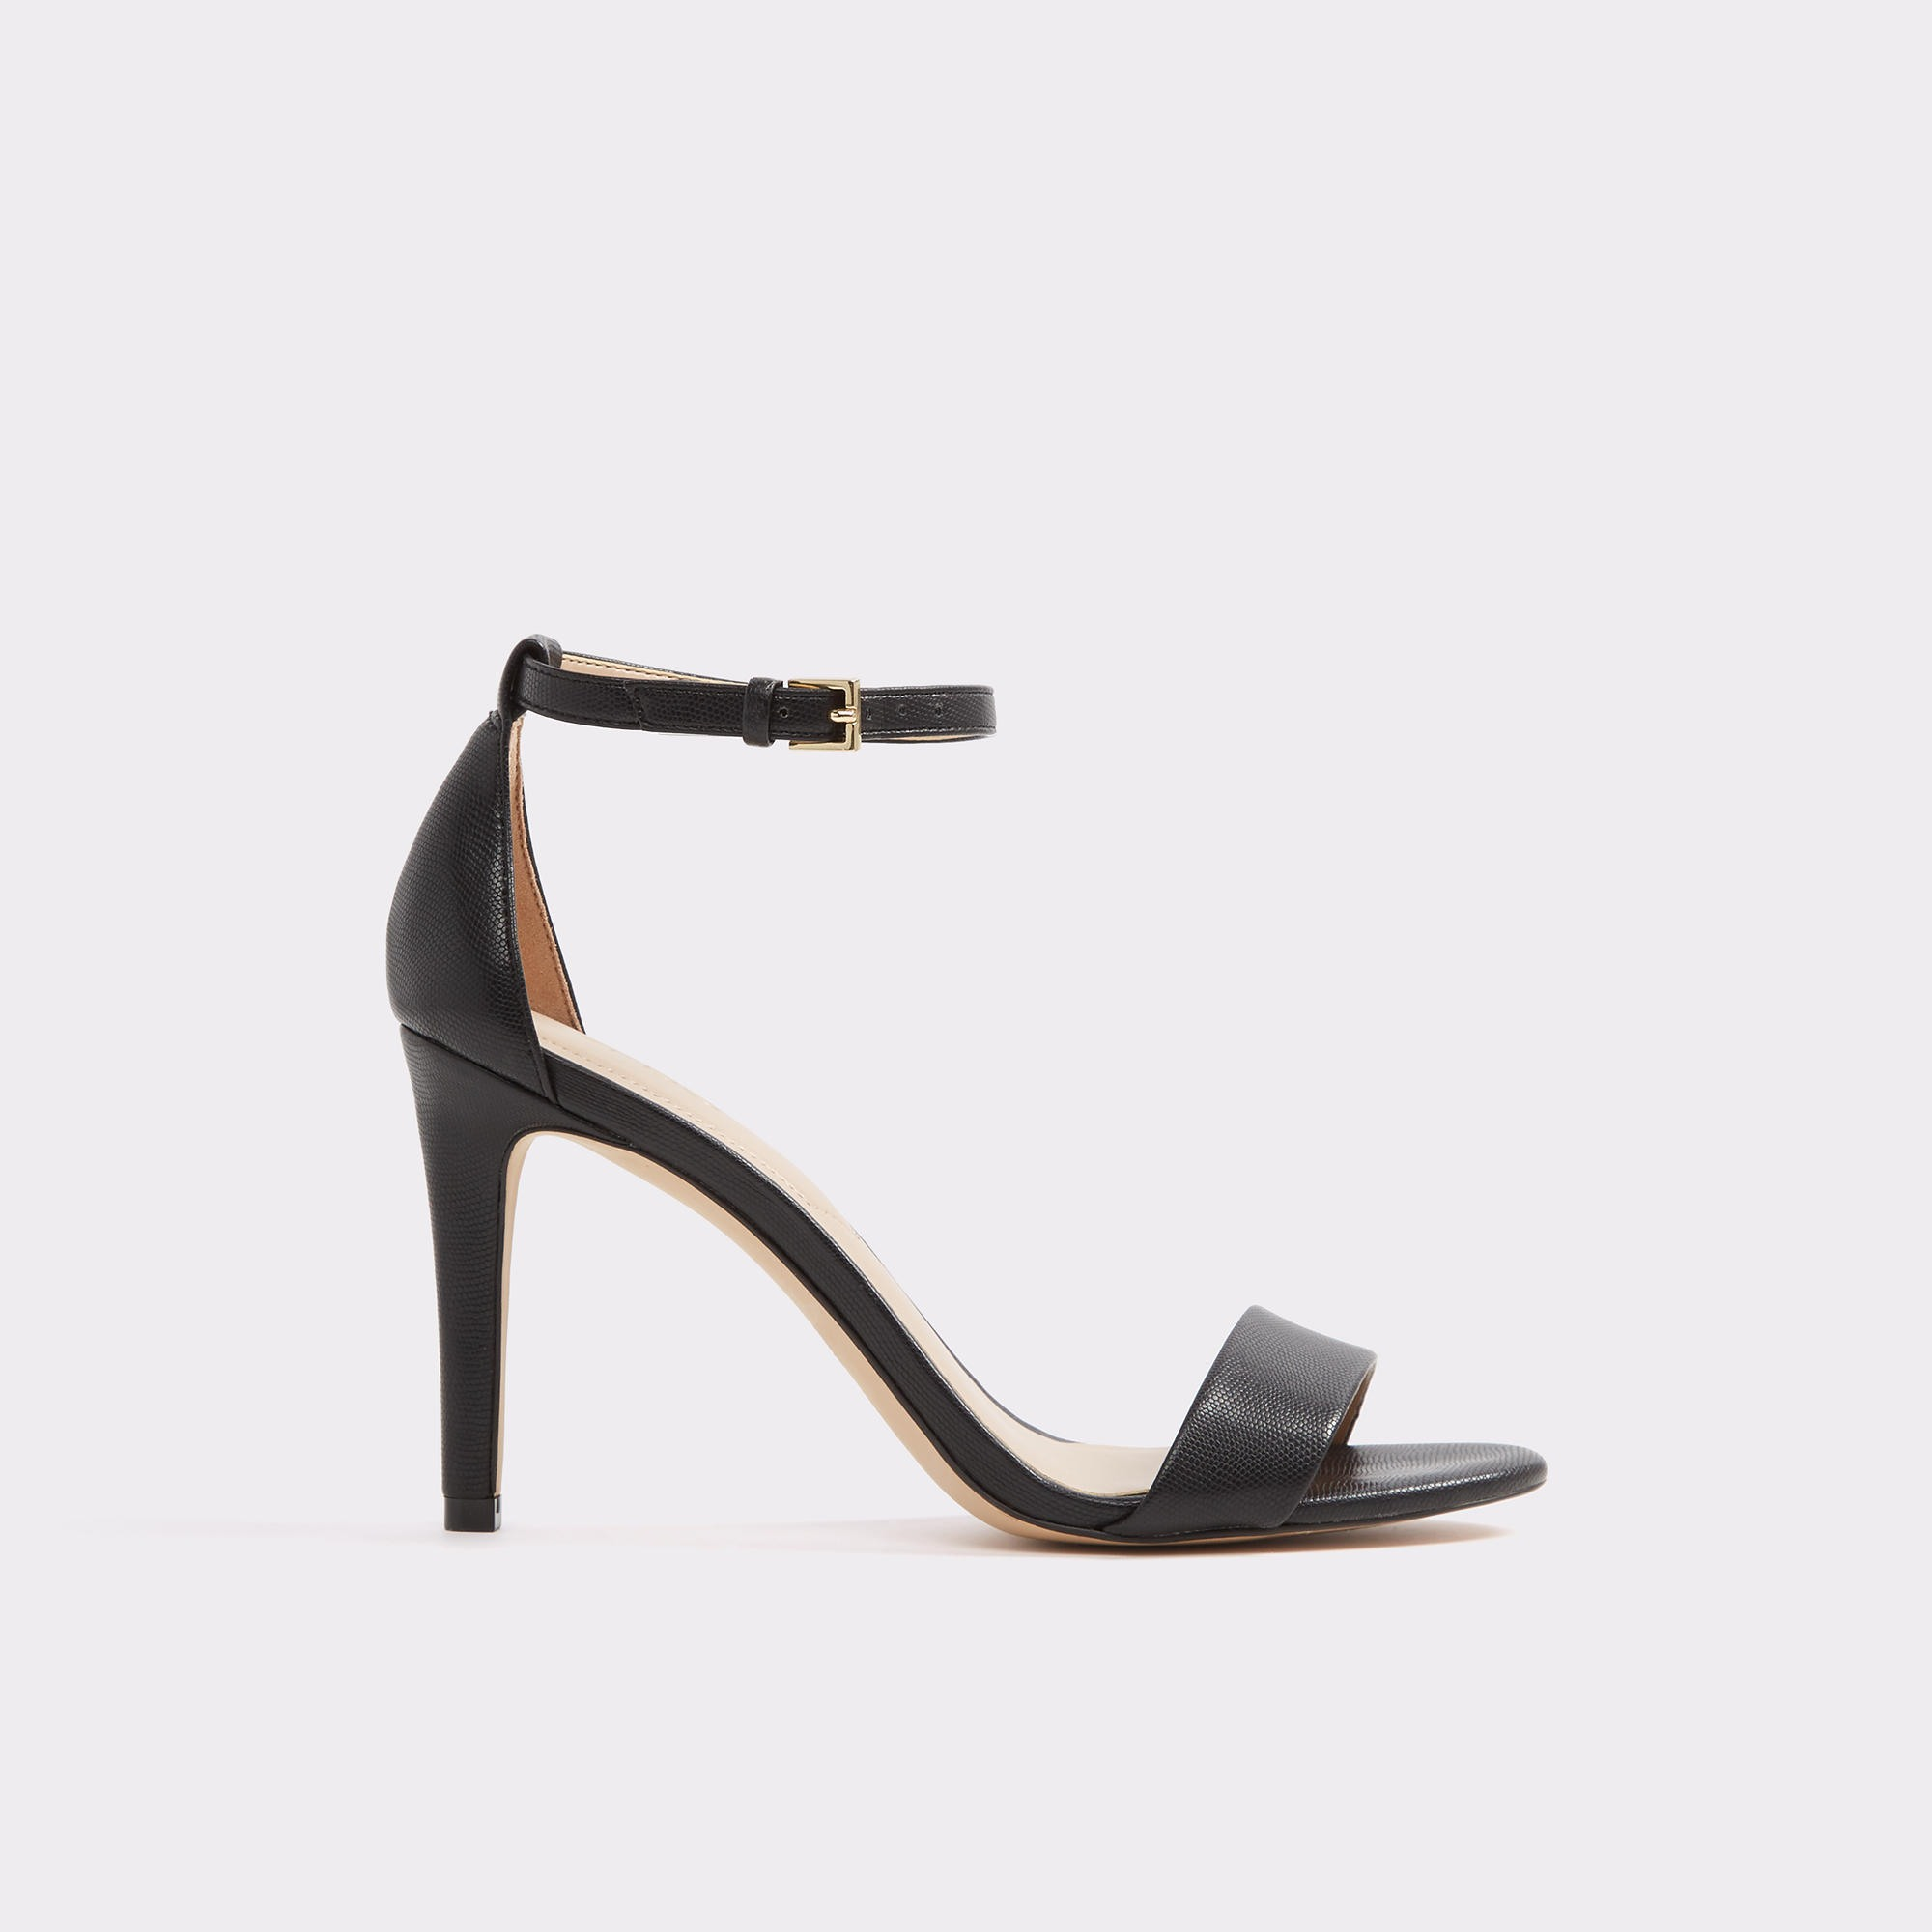 shoe clearance - Shop clearance at ALDO & browse the latest collection of accessibly priced footwear and accessories for men and women, in a wide variety of on-trend styles.